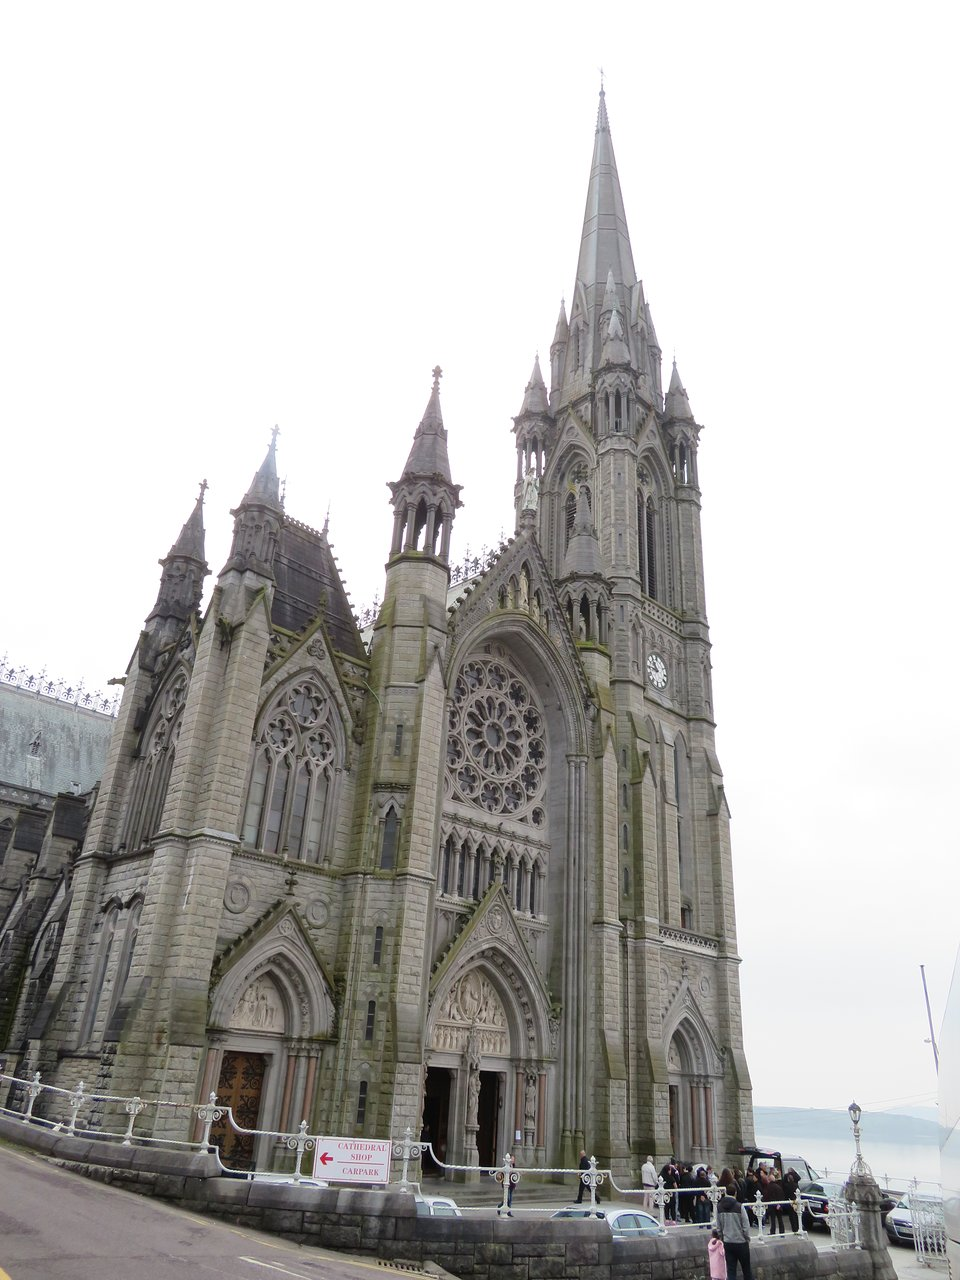 Experience Cork (Cobh), Ireland & Excursions for Dublin